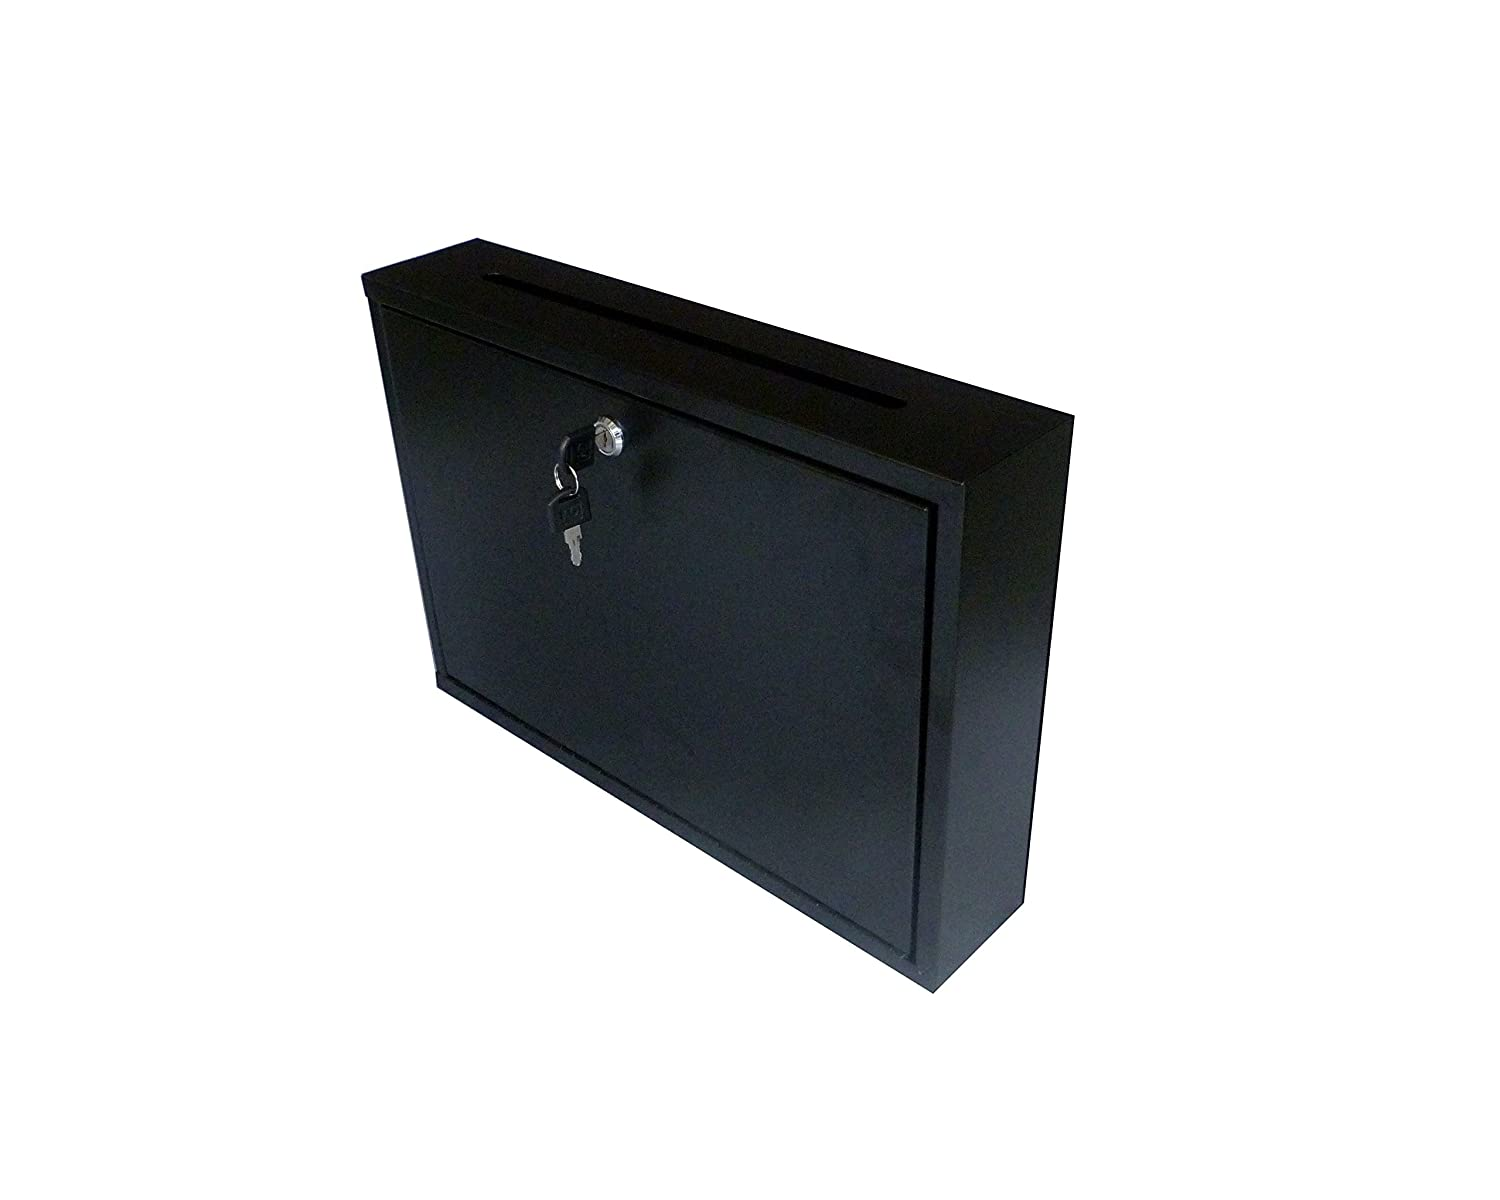 FixtureDisplays Wall-Mountable Locking Inter-Office Mail Suggestion Collection Box 15133!